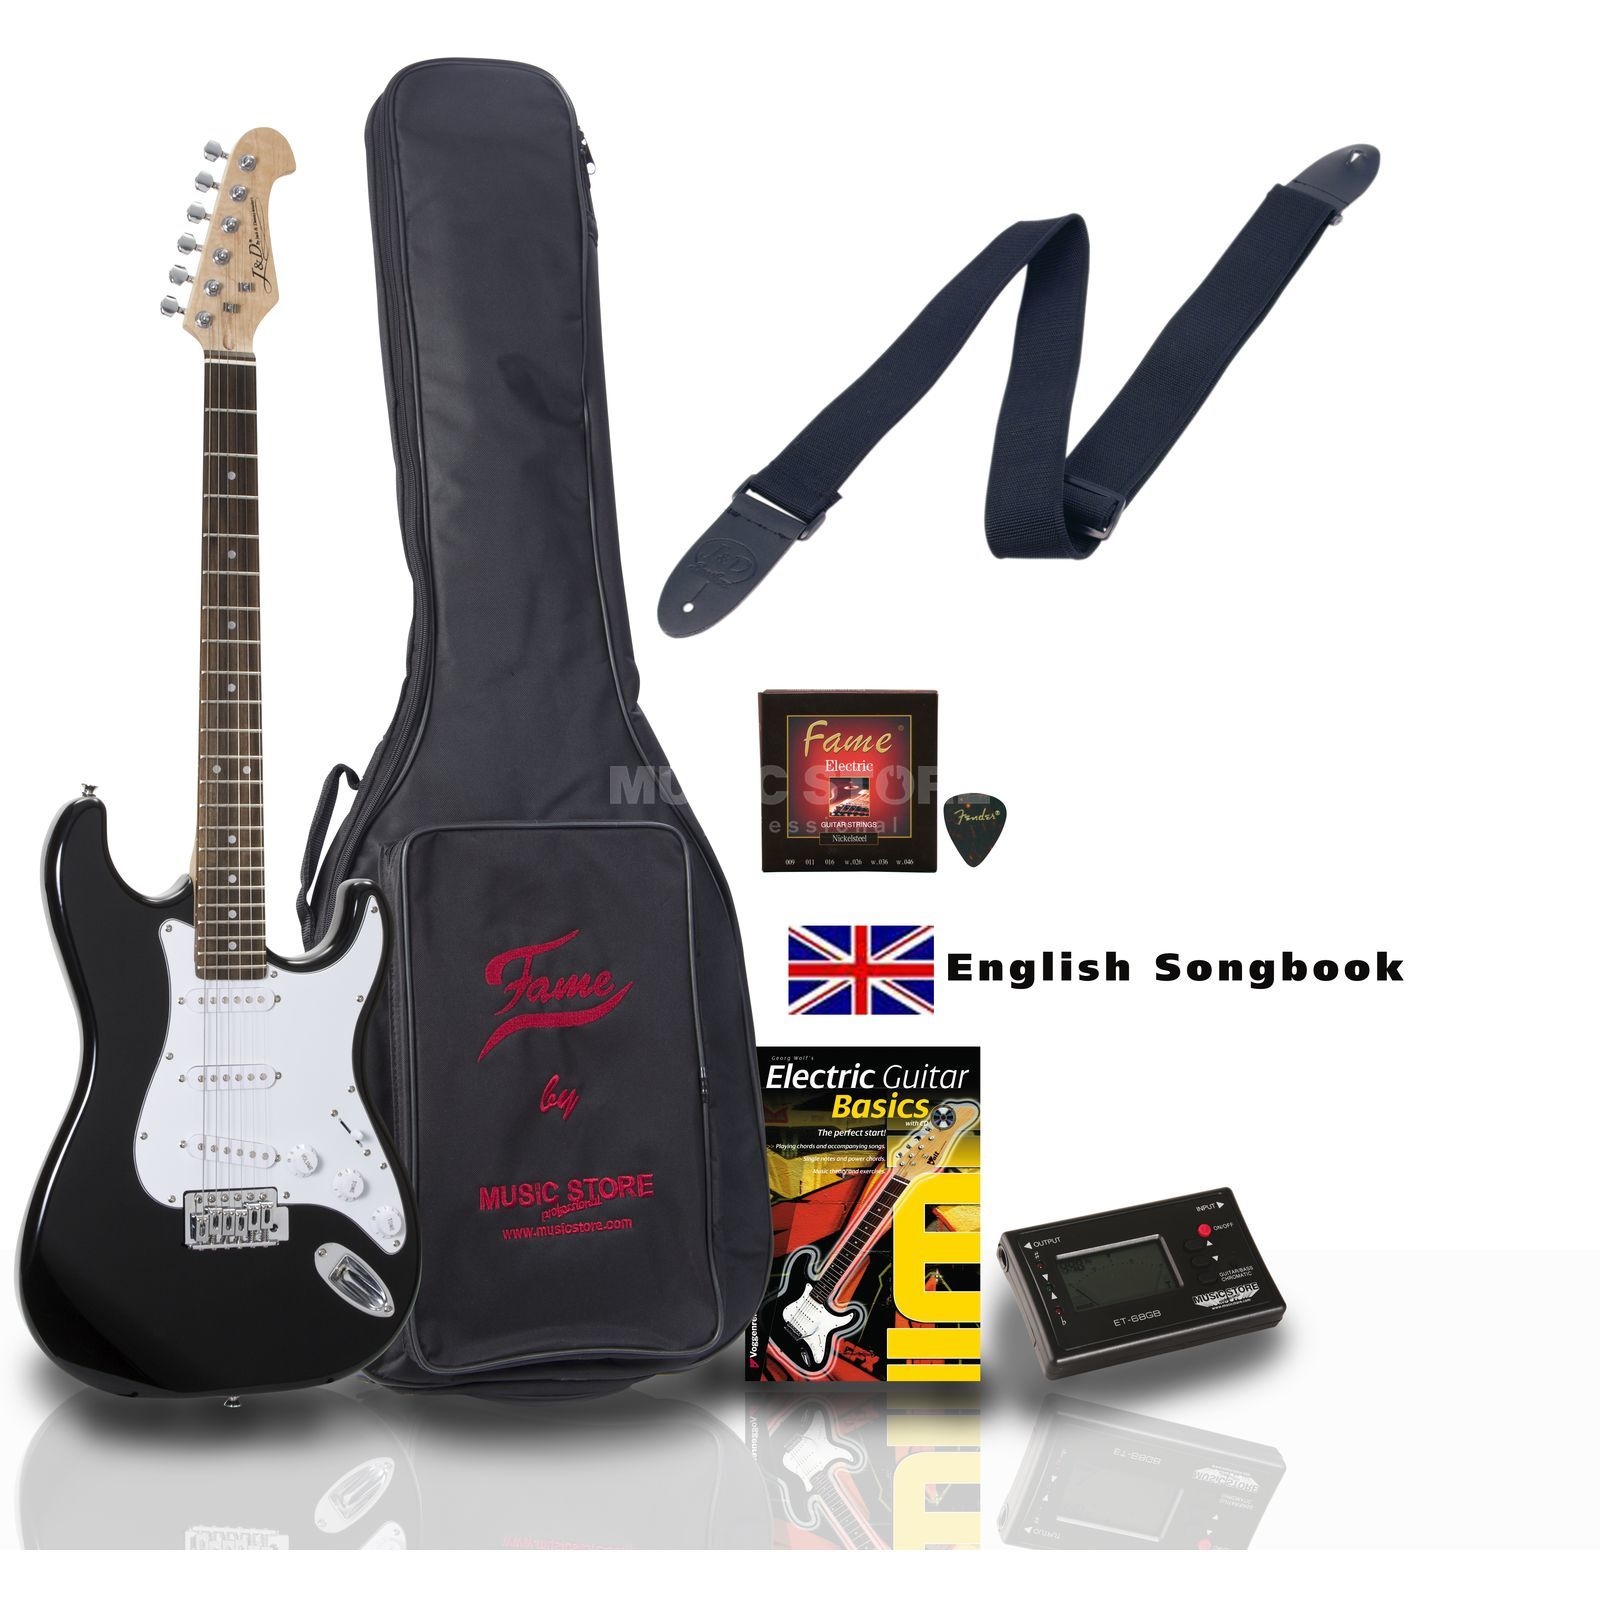 SET Jack Danny ST Rock BK ENGLISH +Bag+Strap+Tuner+Songbook etc. Produktbillede